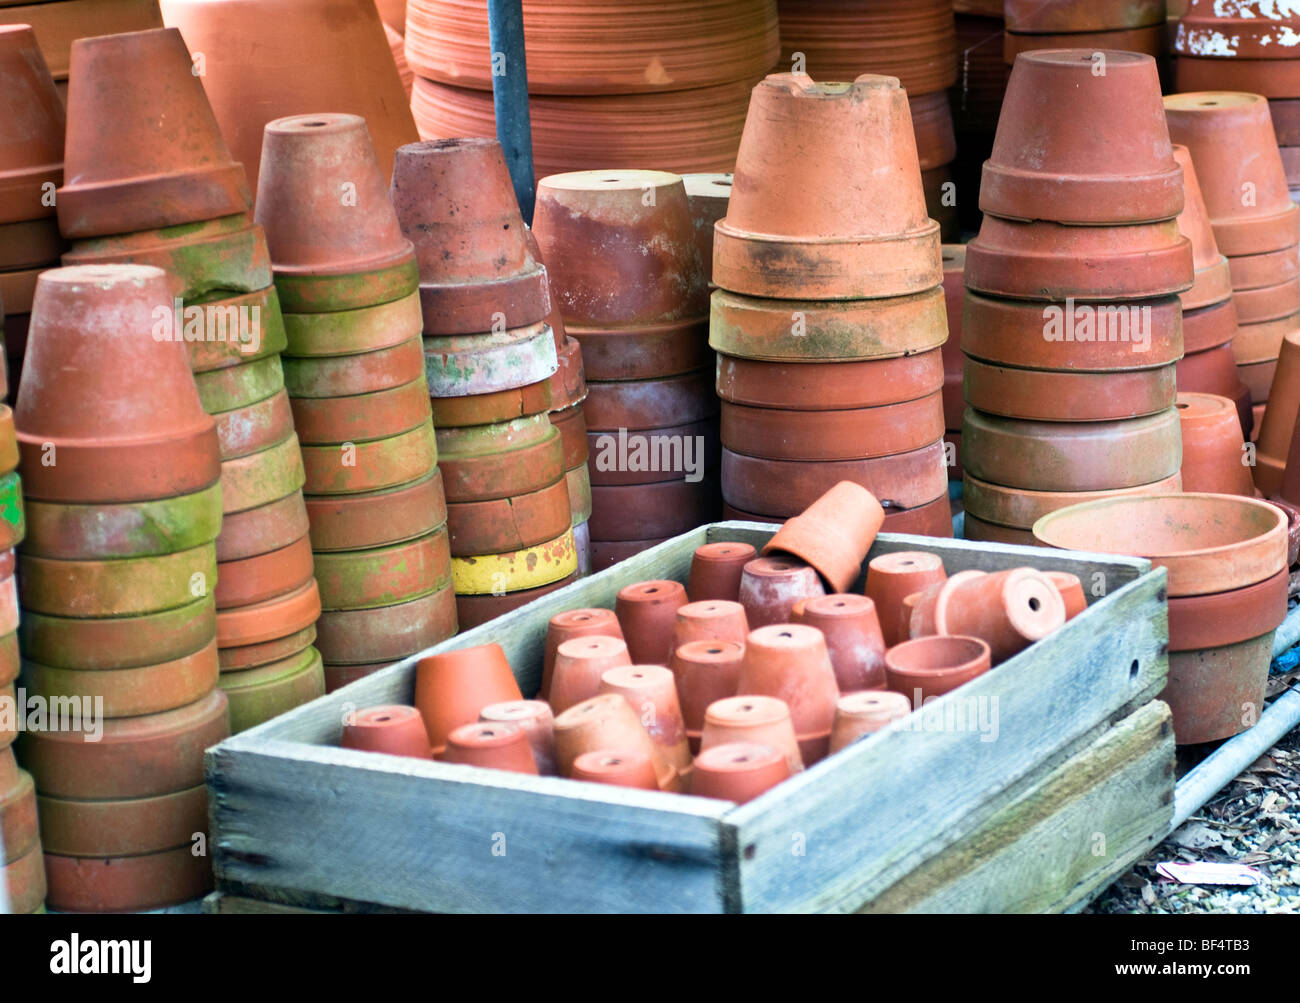 Terracotta flower pots without plants stacked in rows. - Stock Image